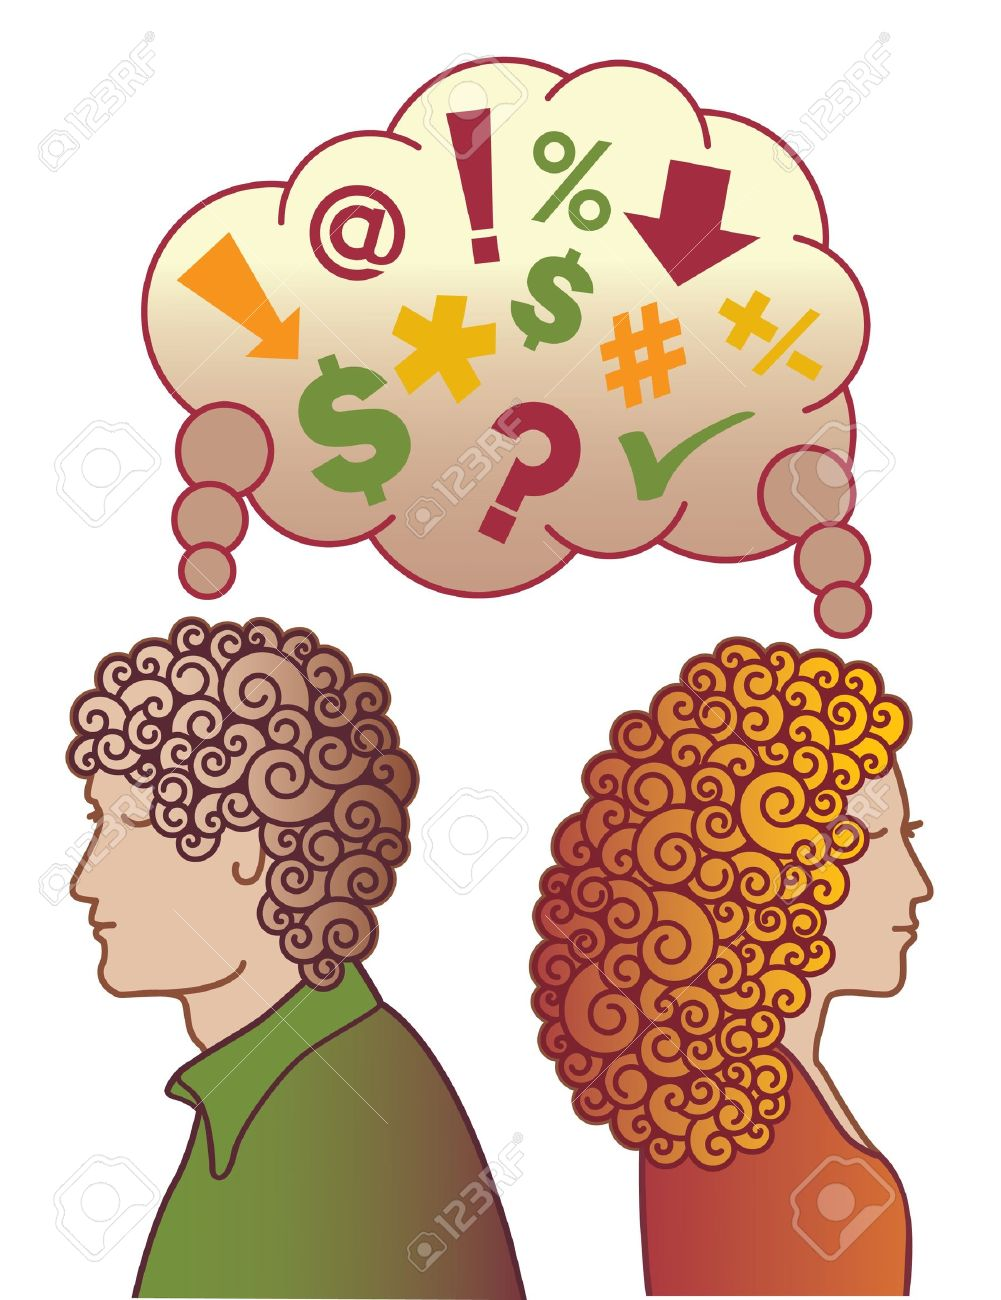 A couple upset and not speaking to one another, thinking bad thoughts. Stock Vector - 9755922